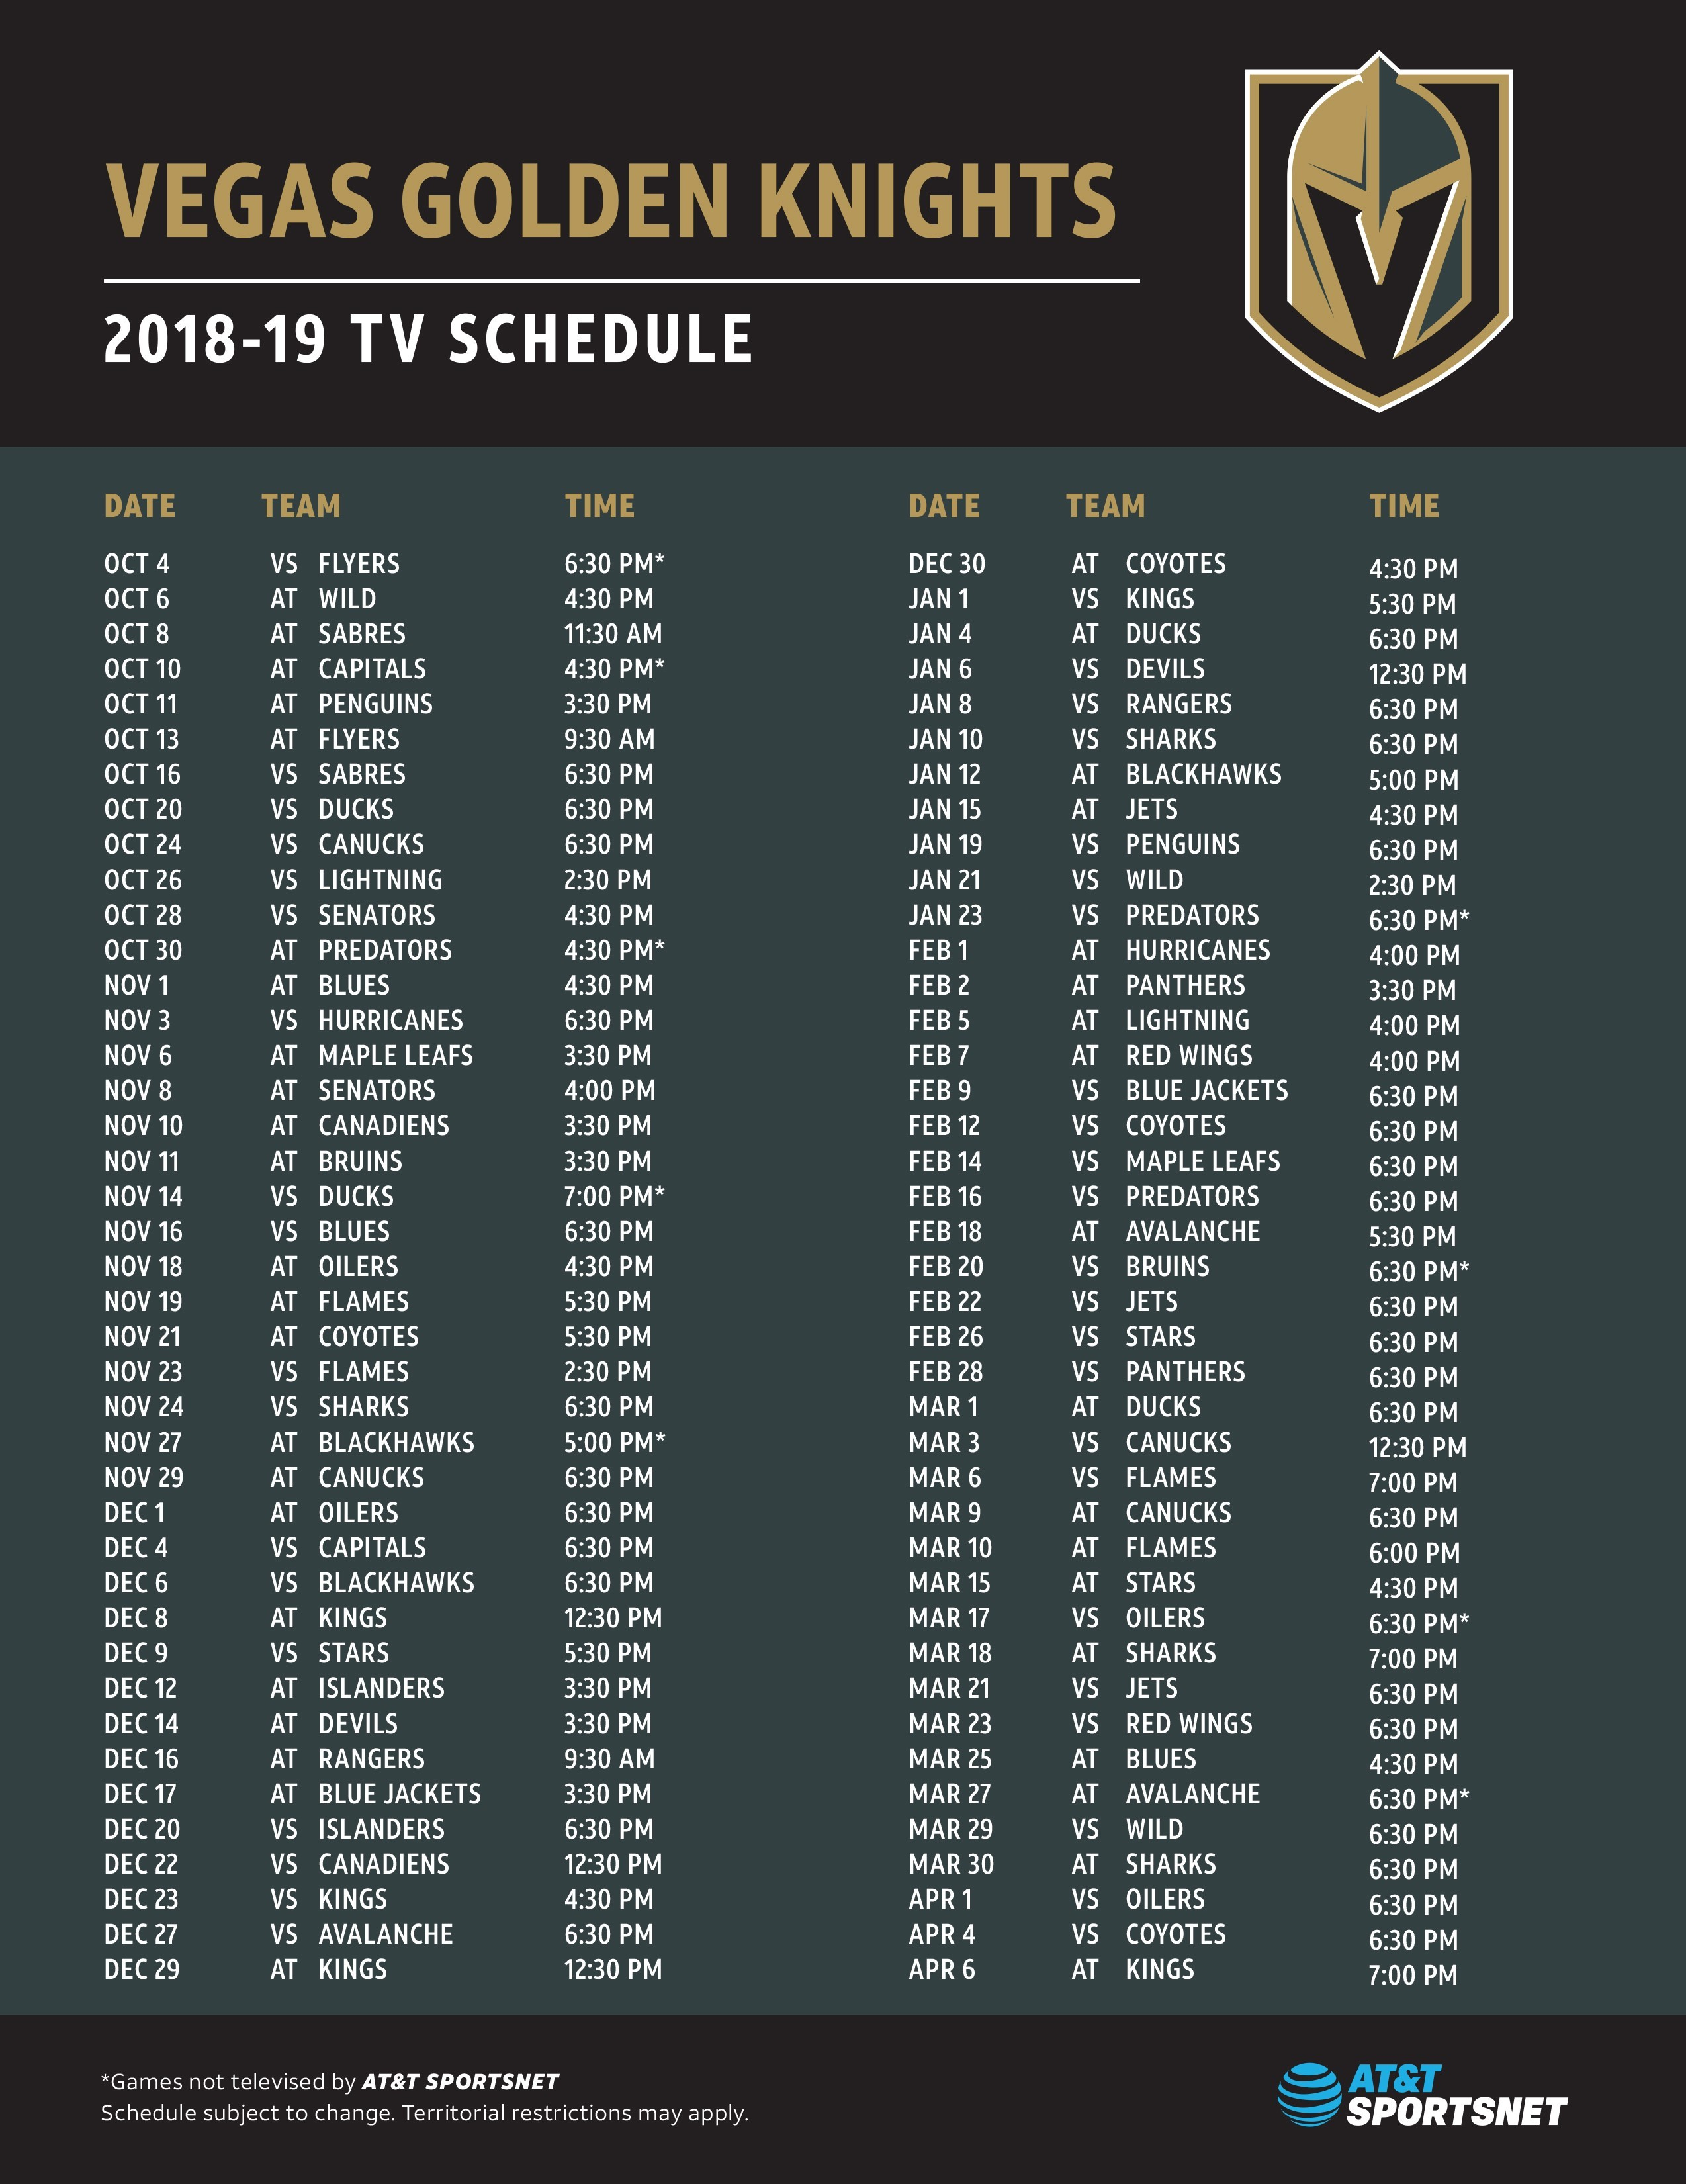 at&t sportsnet and the vegas golden knights to be available on dish